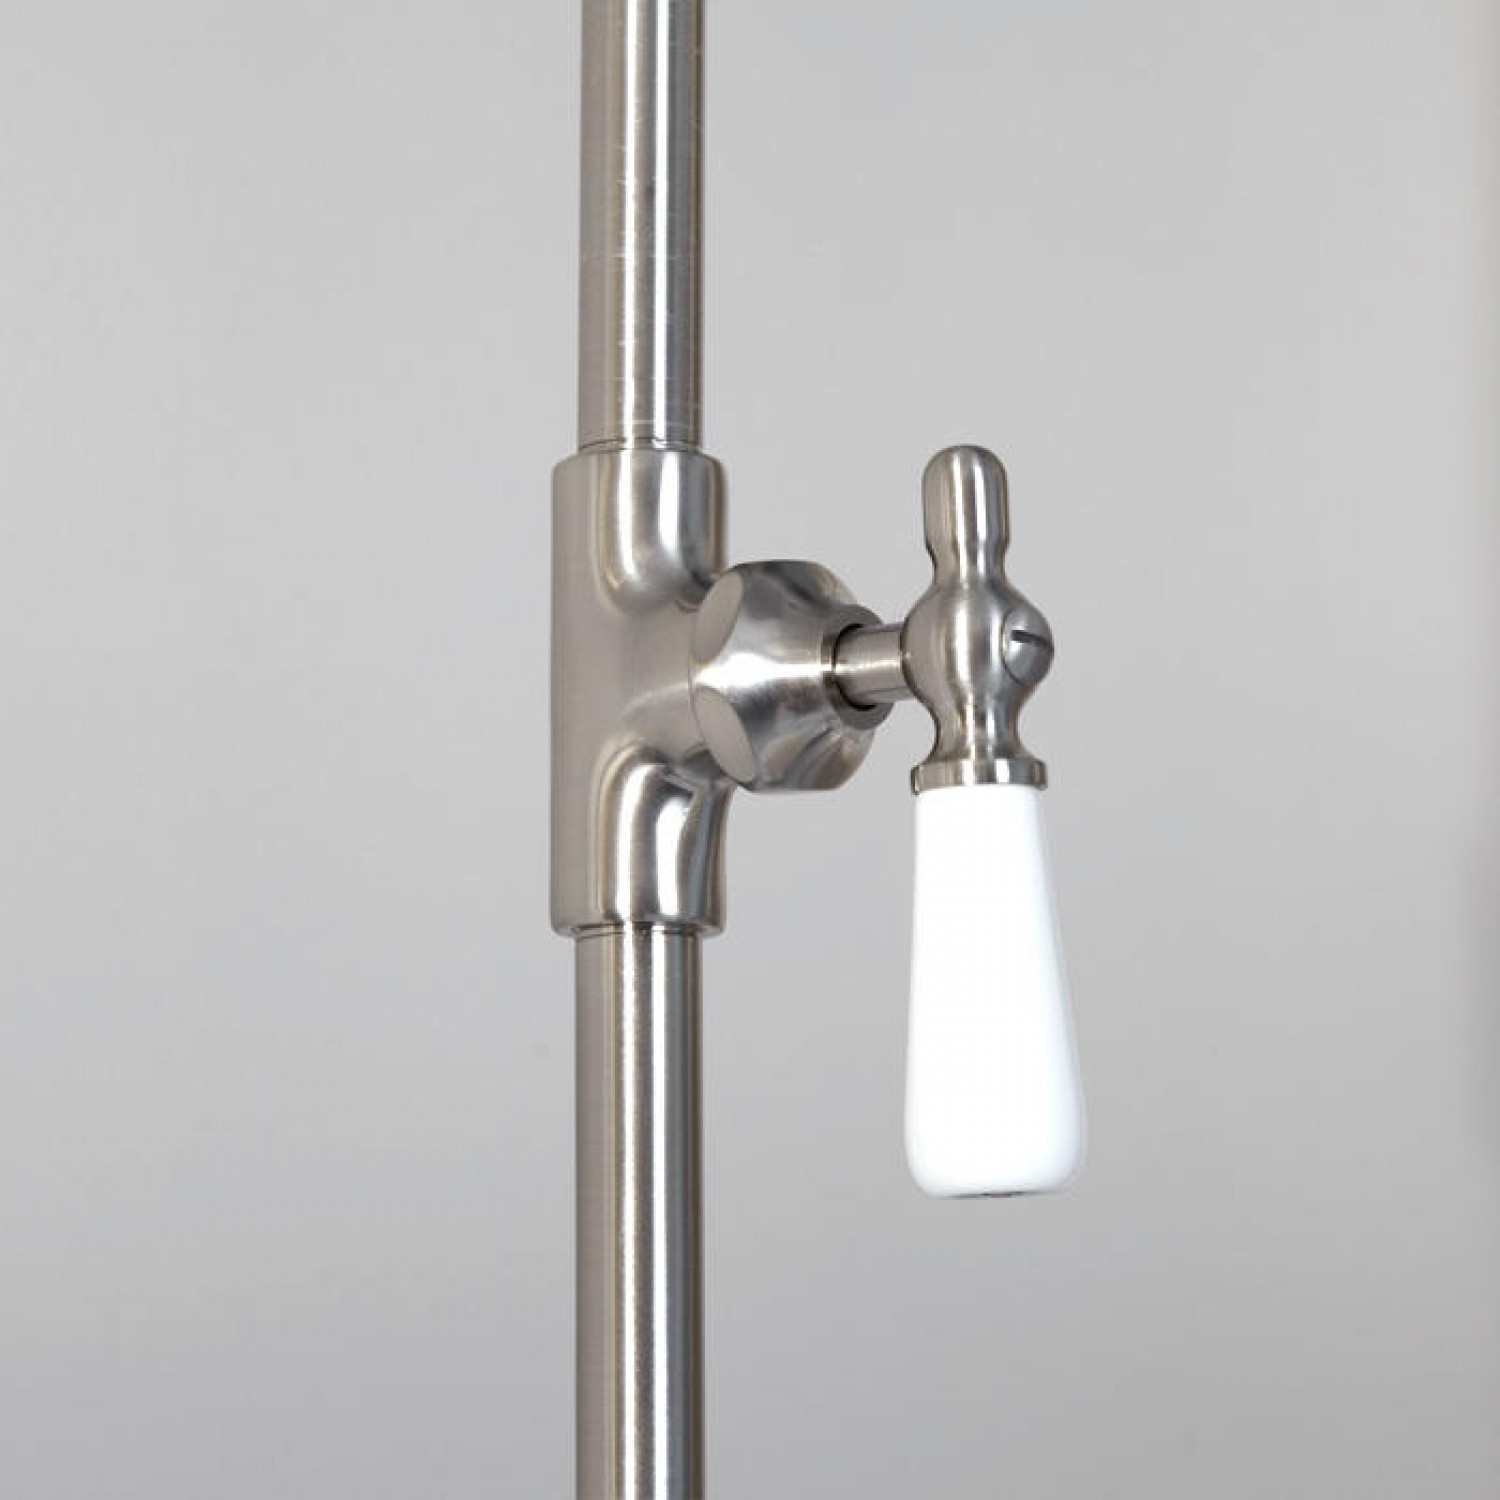 wall shower set with exposed pipe riser and tub filler bathroom with dimensions 1500 x 1500